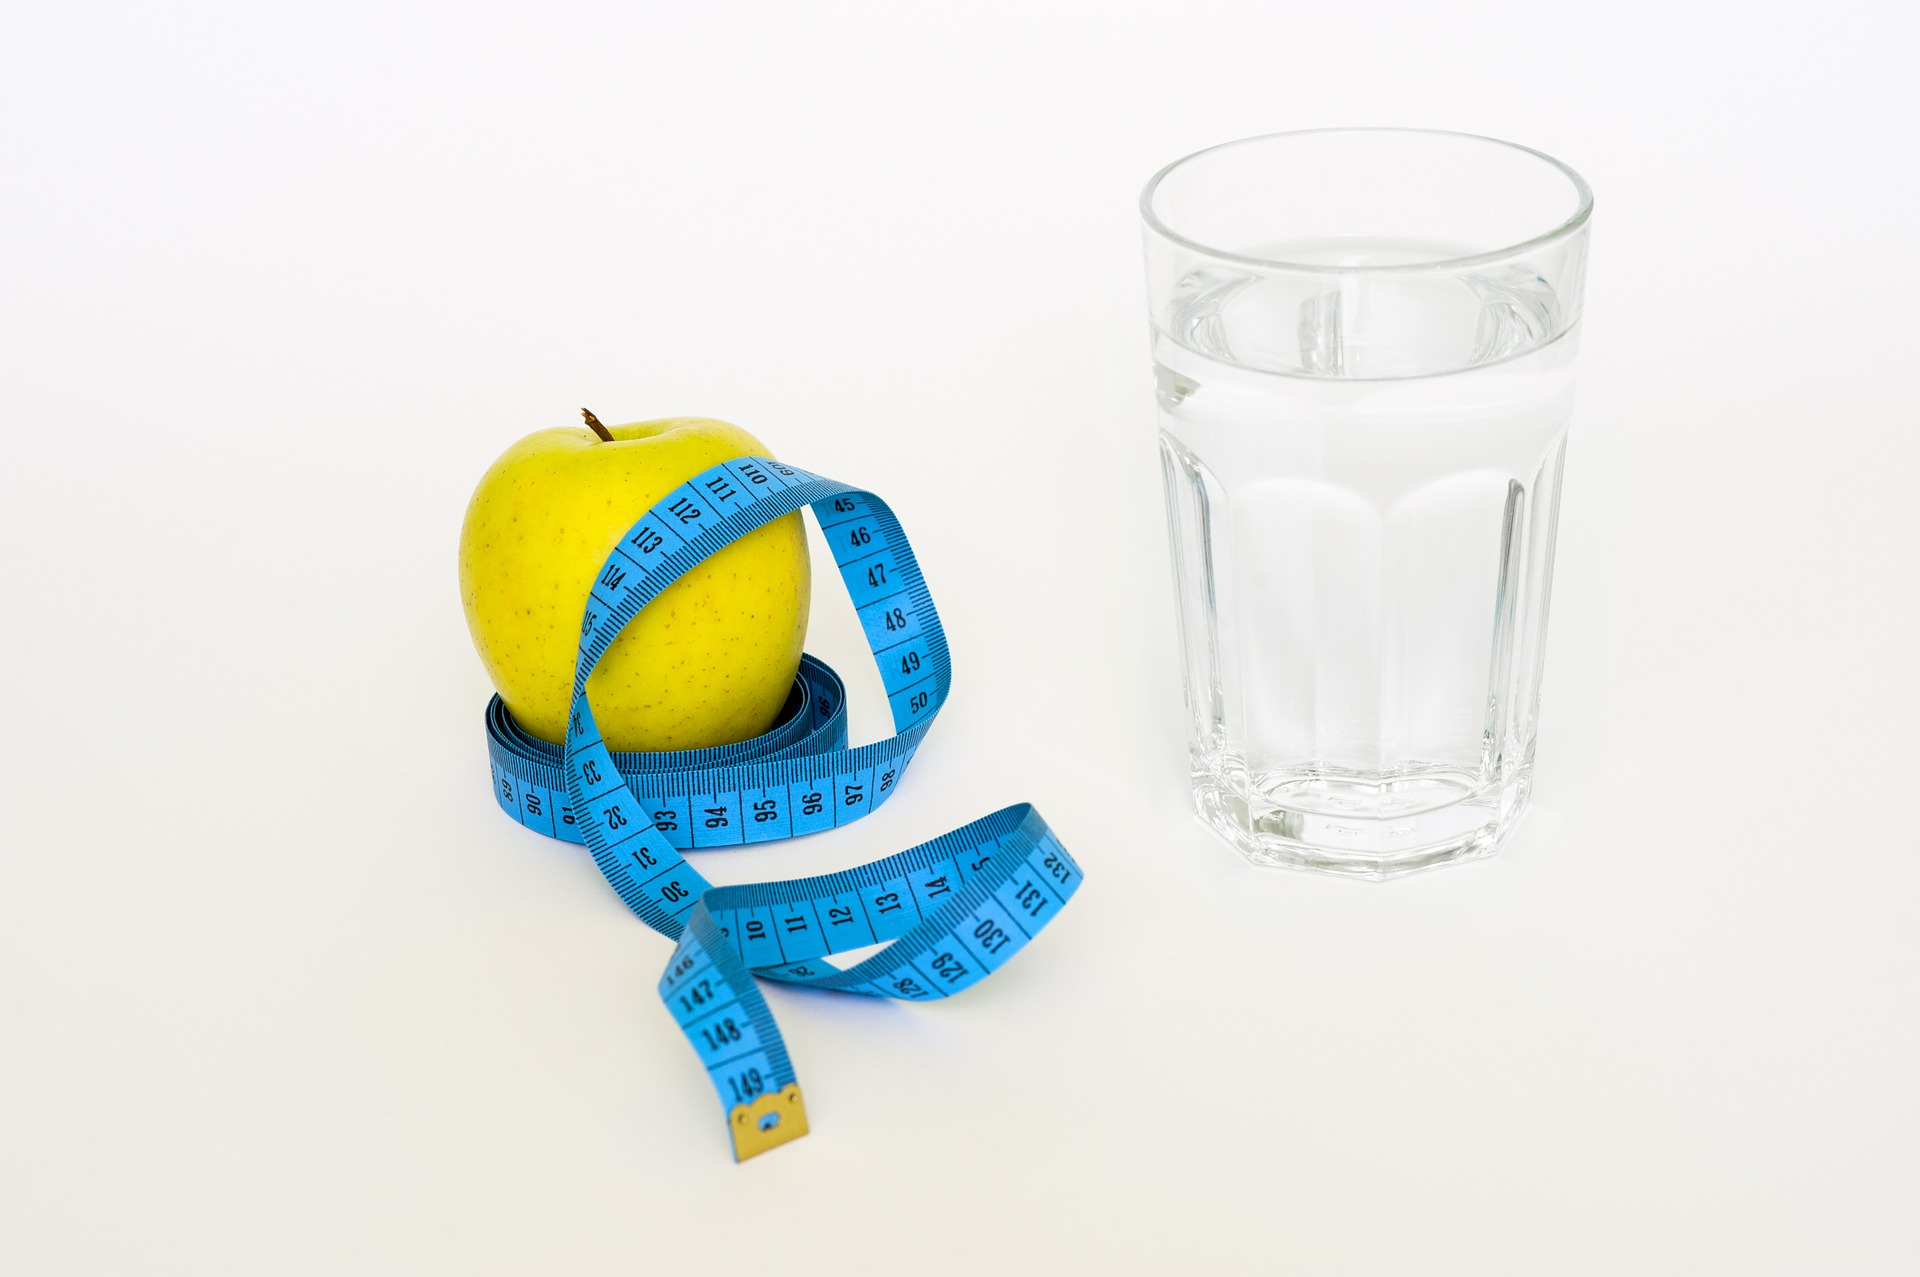 An extremely low calorie diet is not a healthy way to lose weight